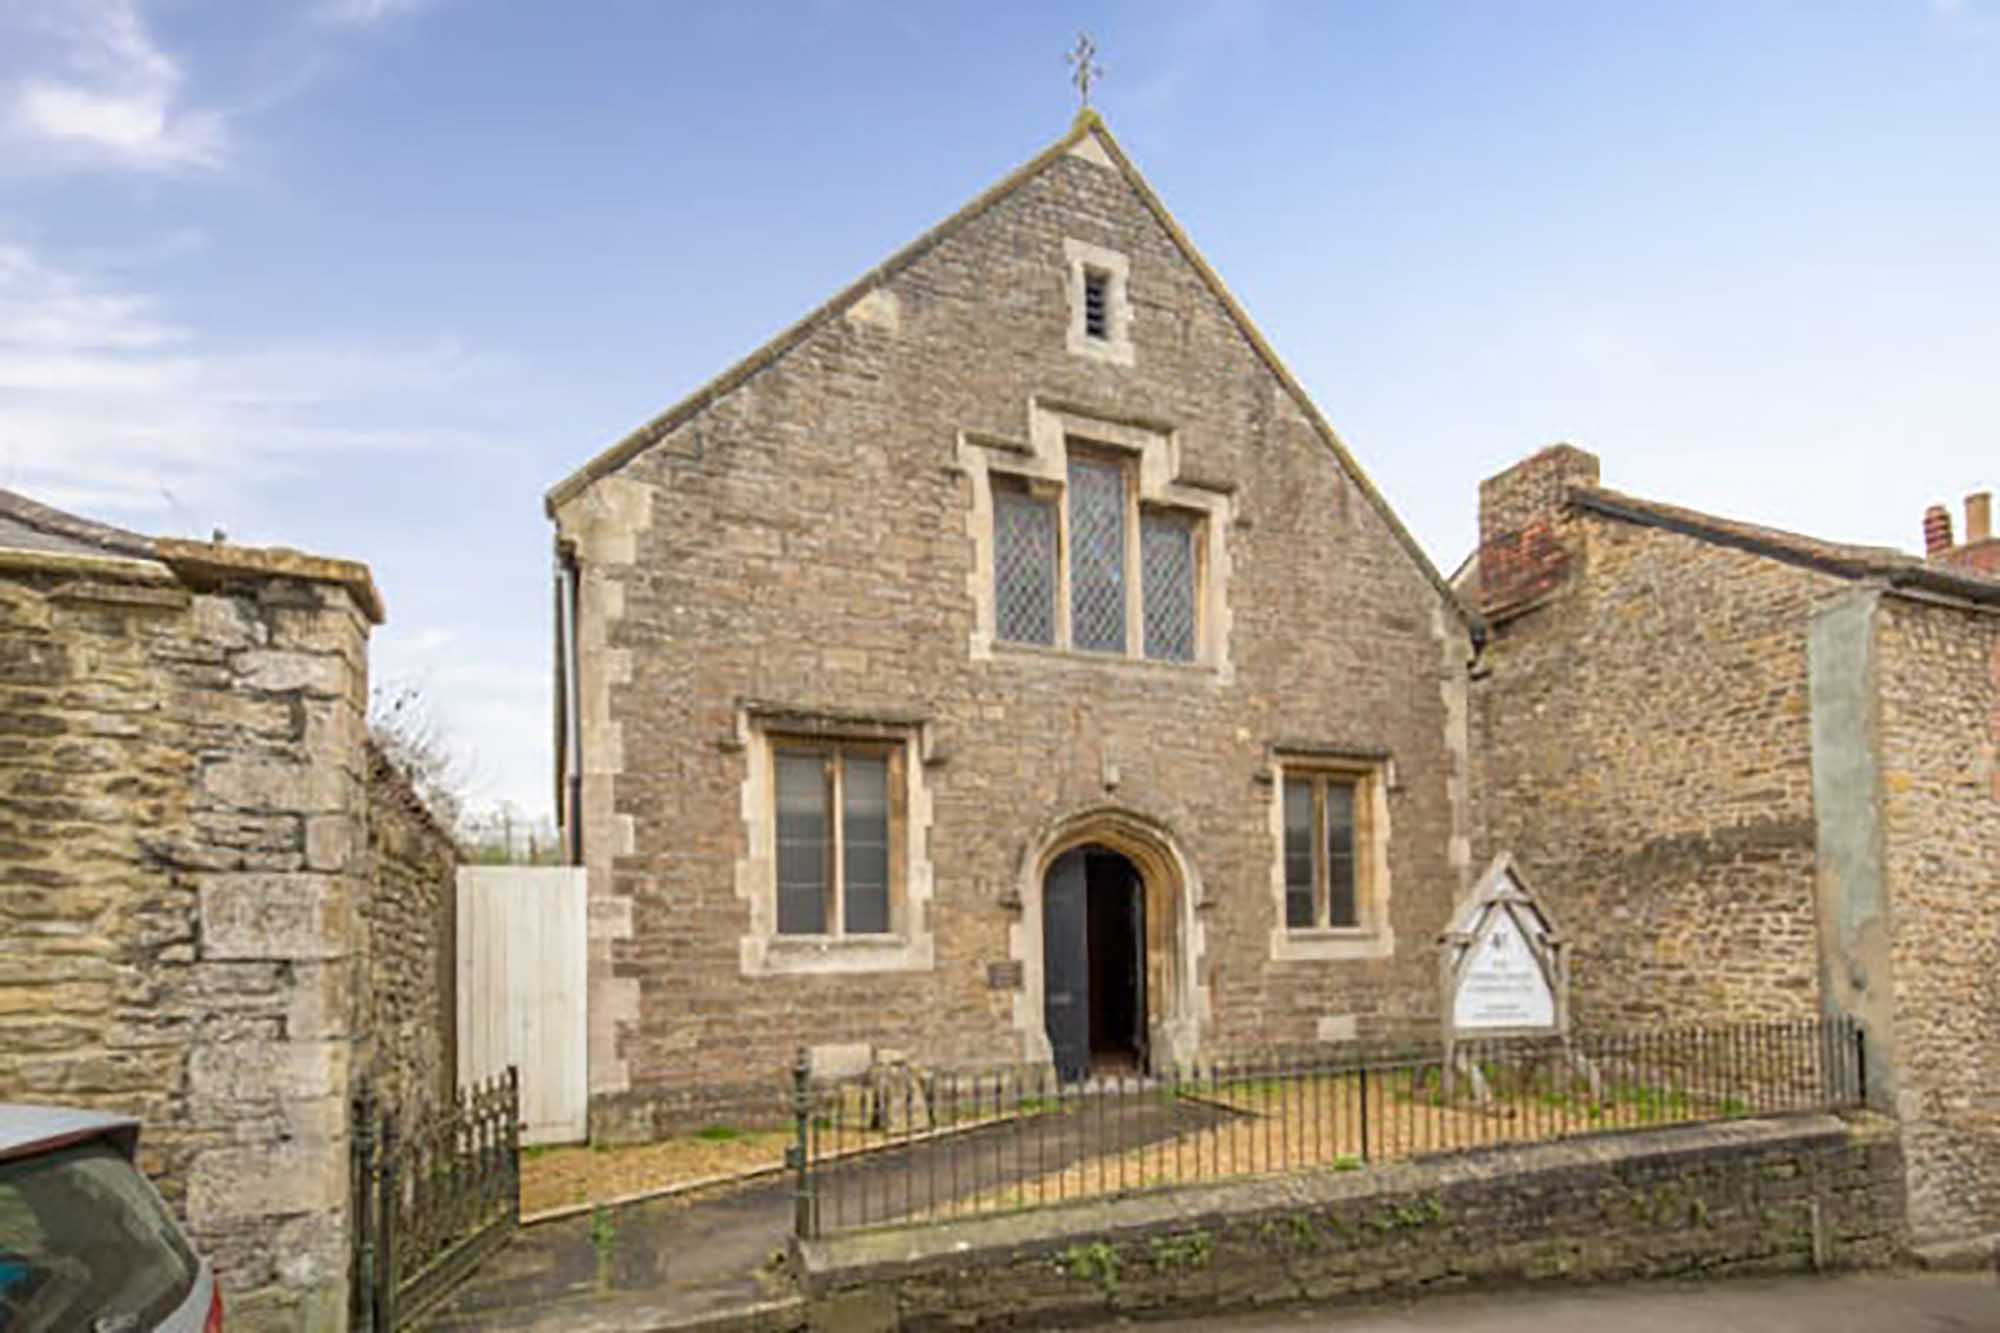 A commercial property in High Street, Bruton that also has residential Planning permission.